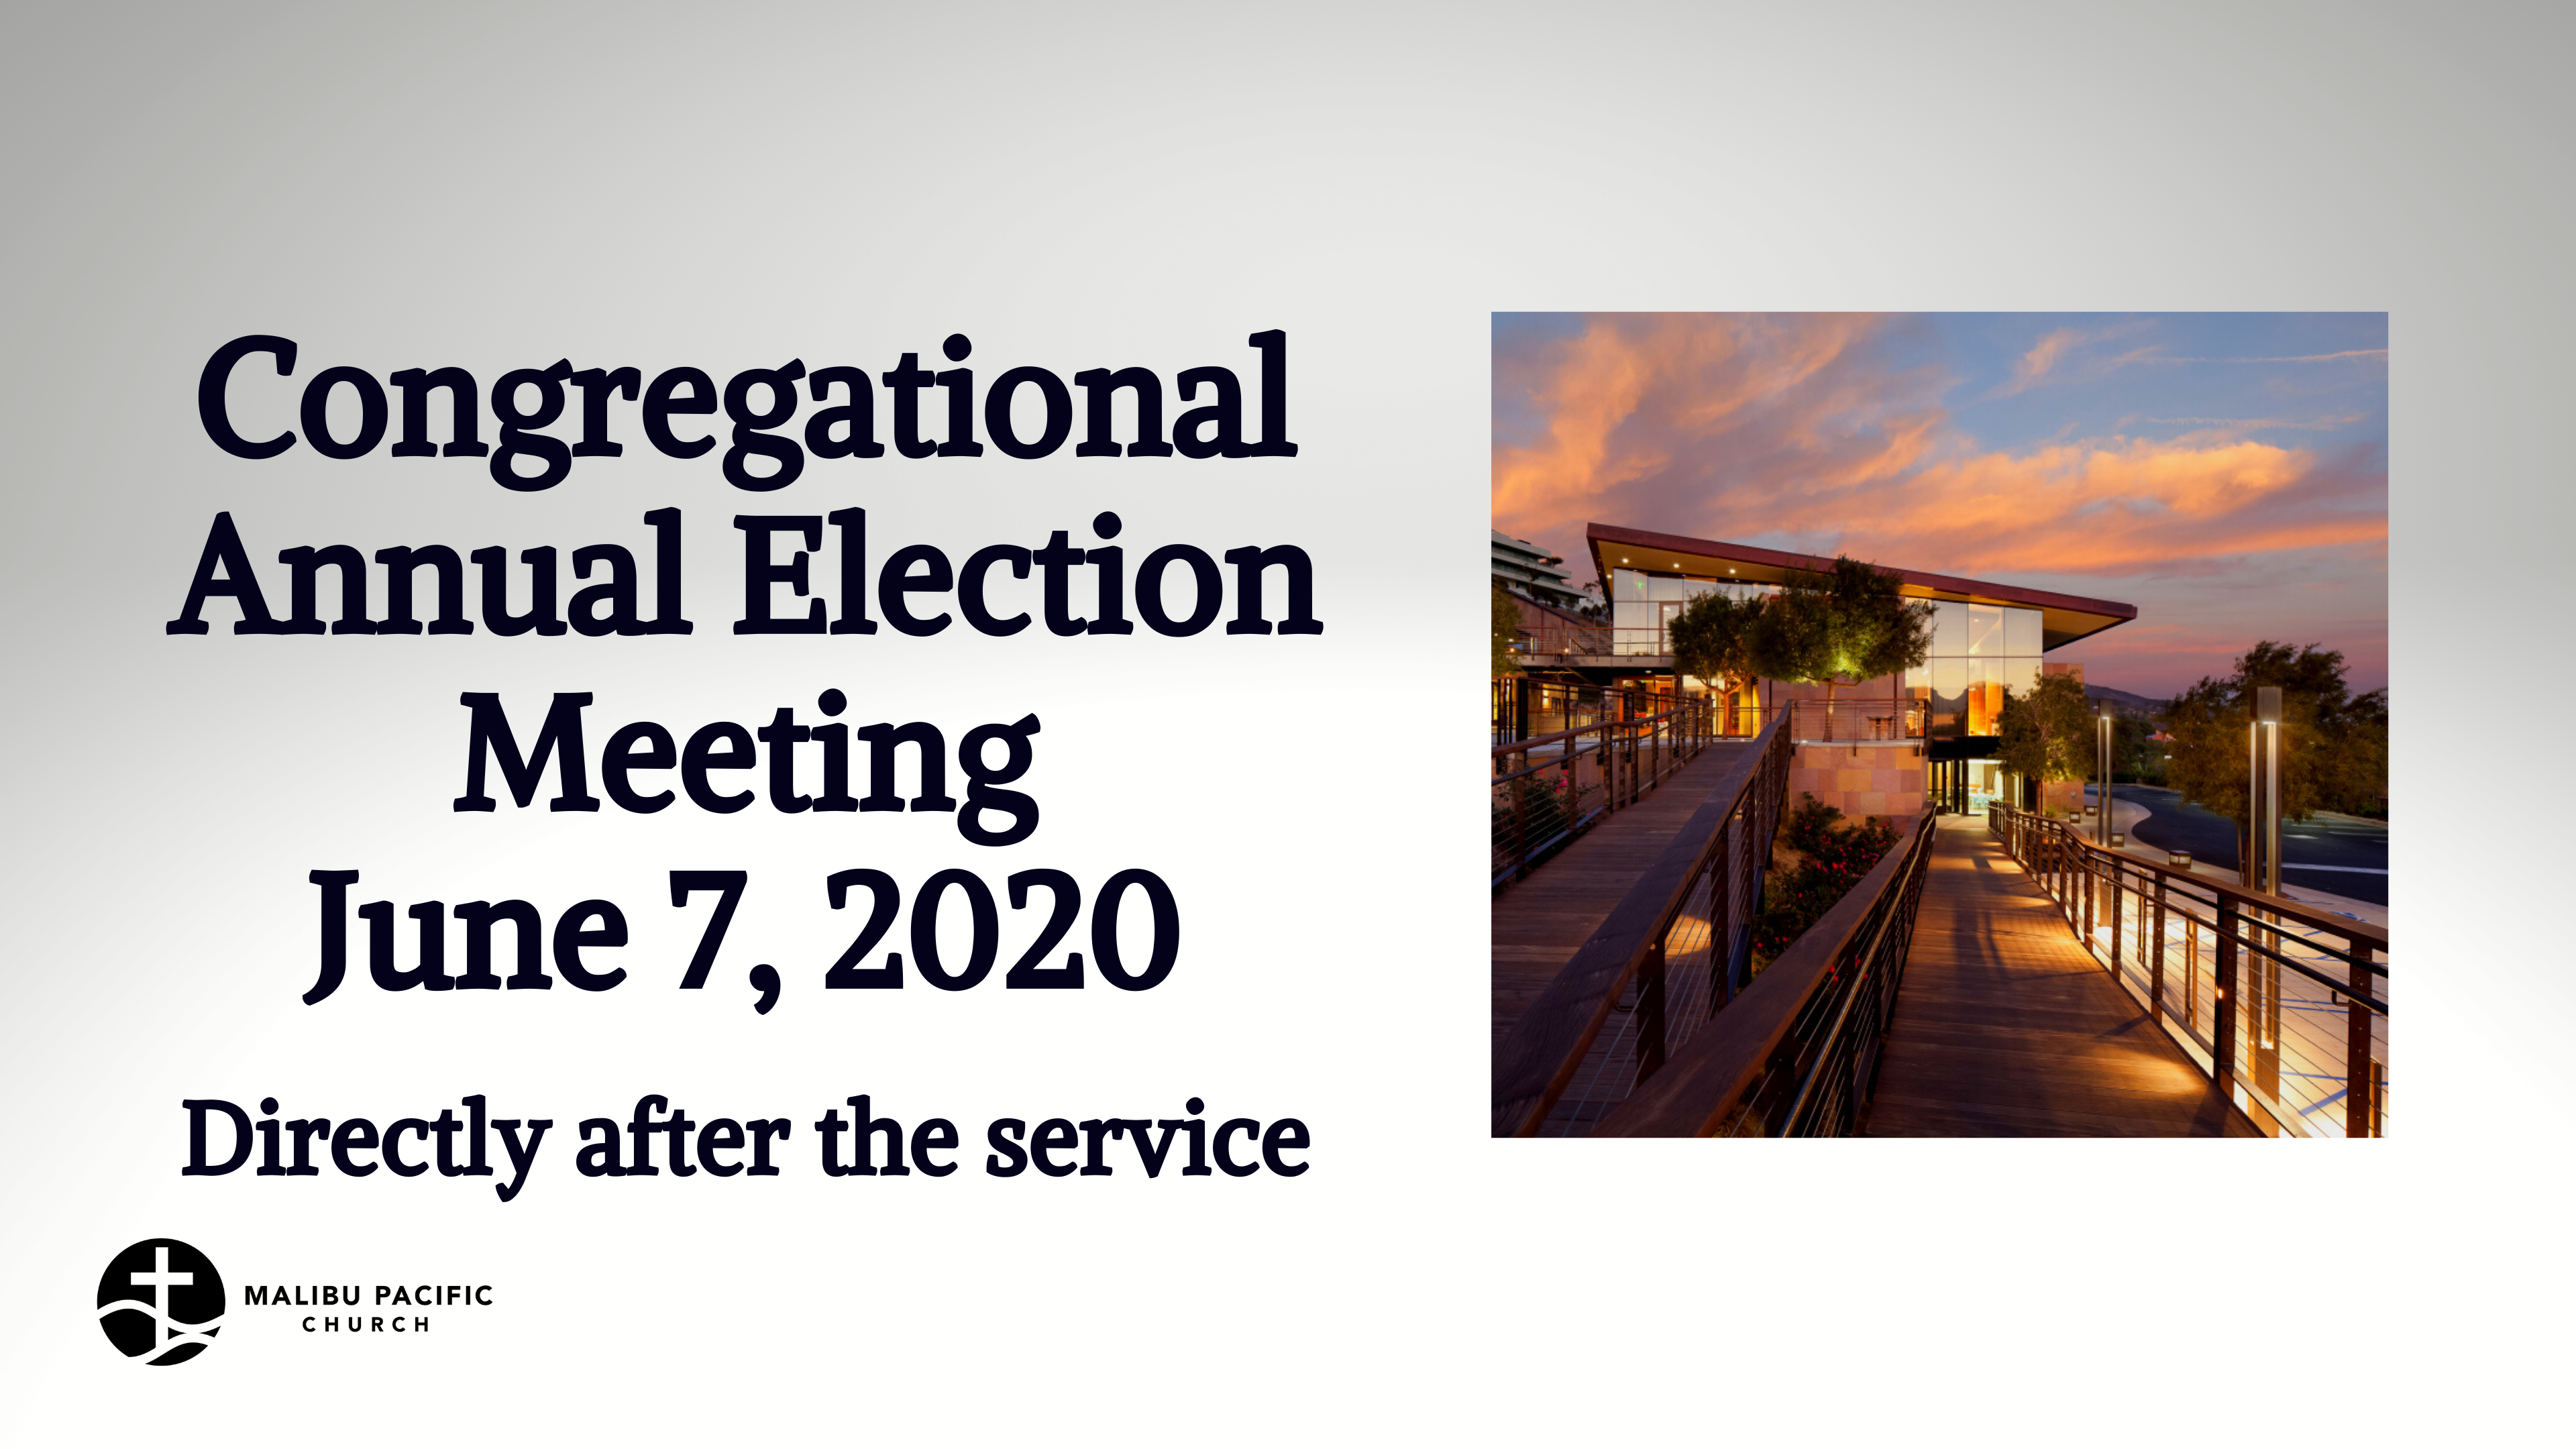 Congregational Annual Election Meeting image